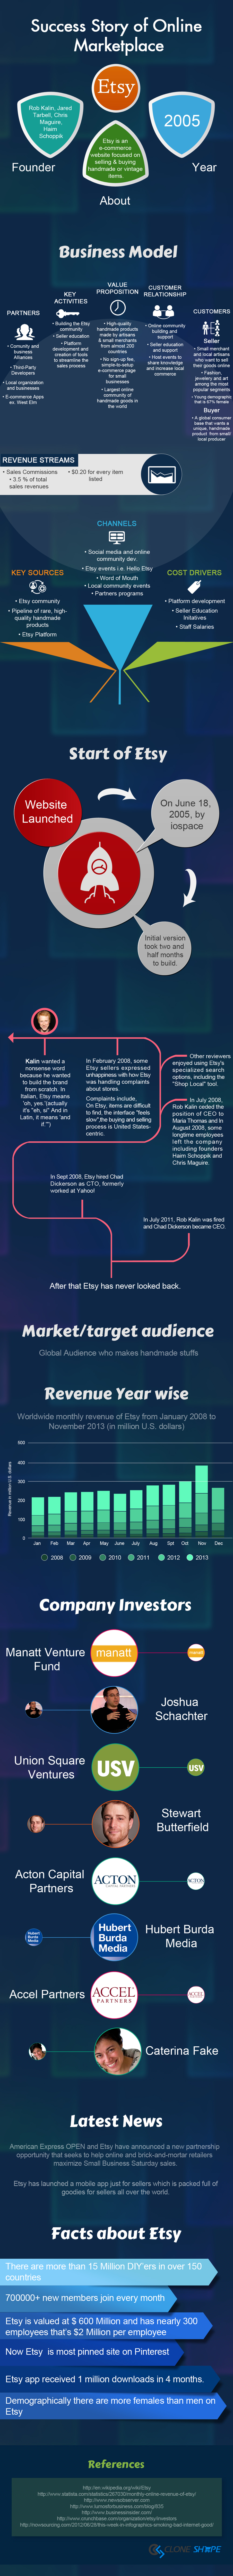 Etsy Success Story - Infographic